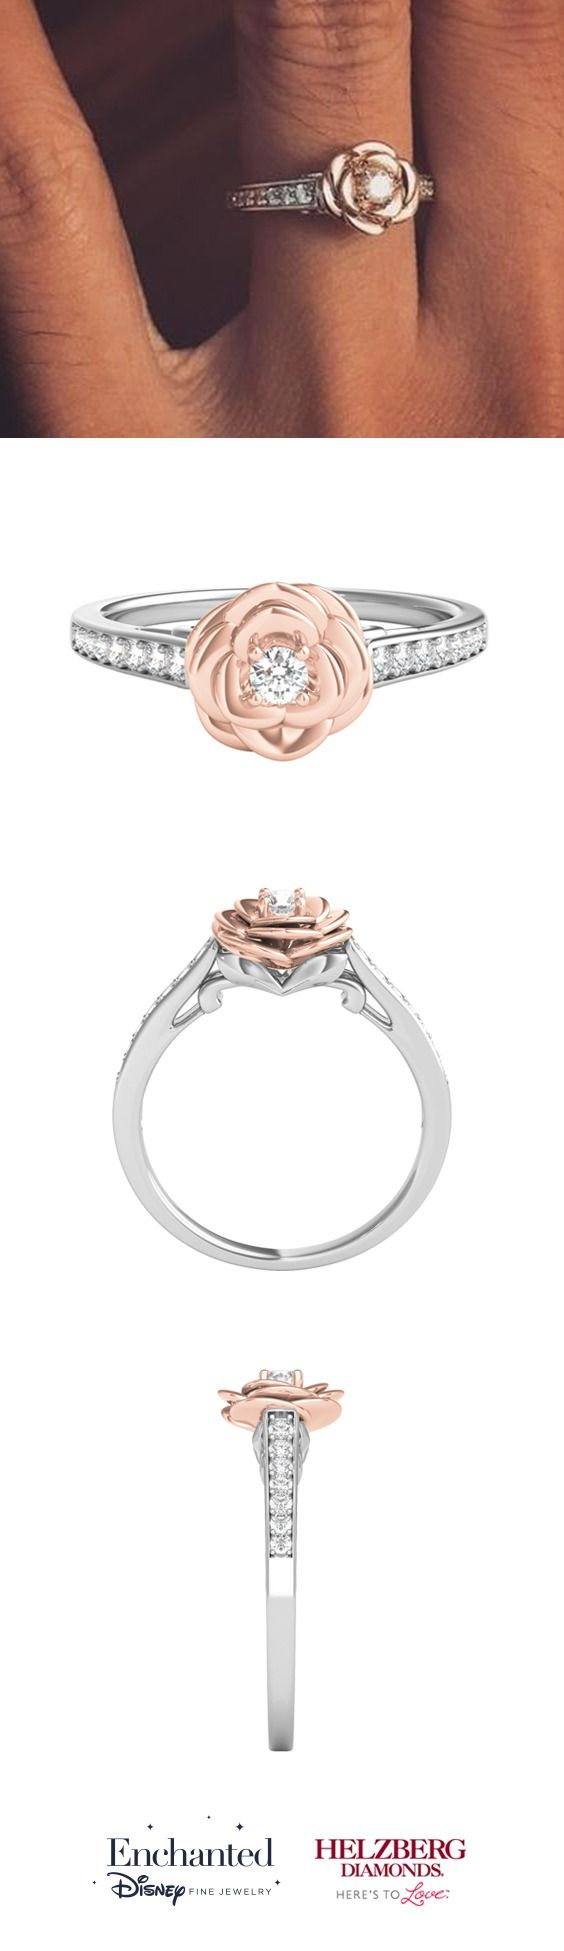 The heart, like a rose, blossoms when loved.   Sweep your beauty off her feet with gorgeous rose gold paired with 15 brilliant cut diamonds. #helzberg #beautyandthebeast #enchantedrose #disneyenchanted